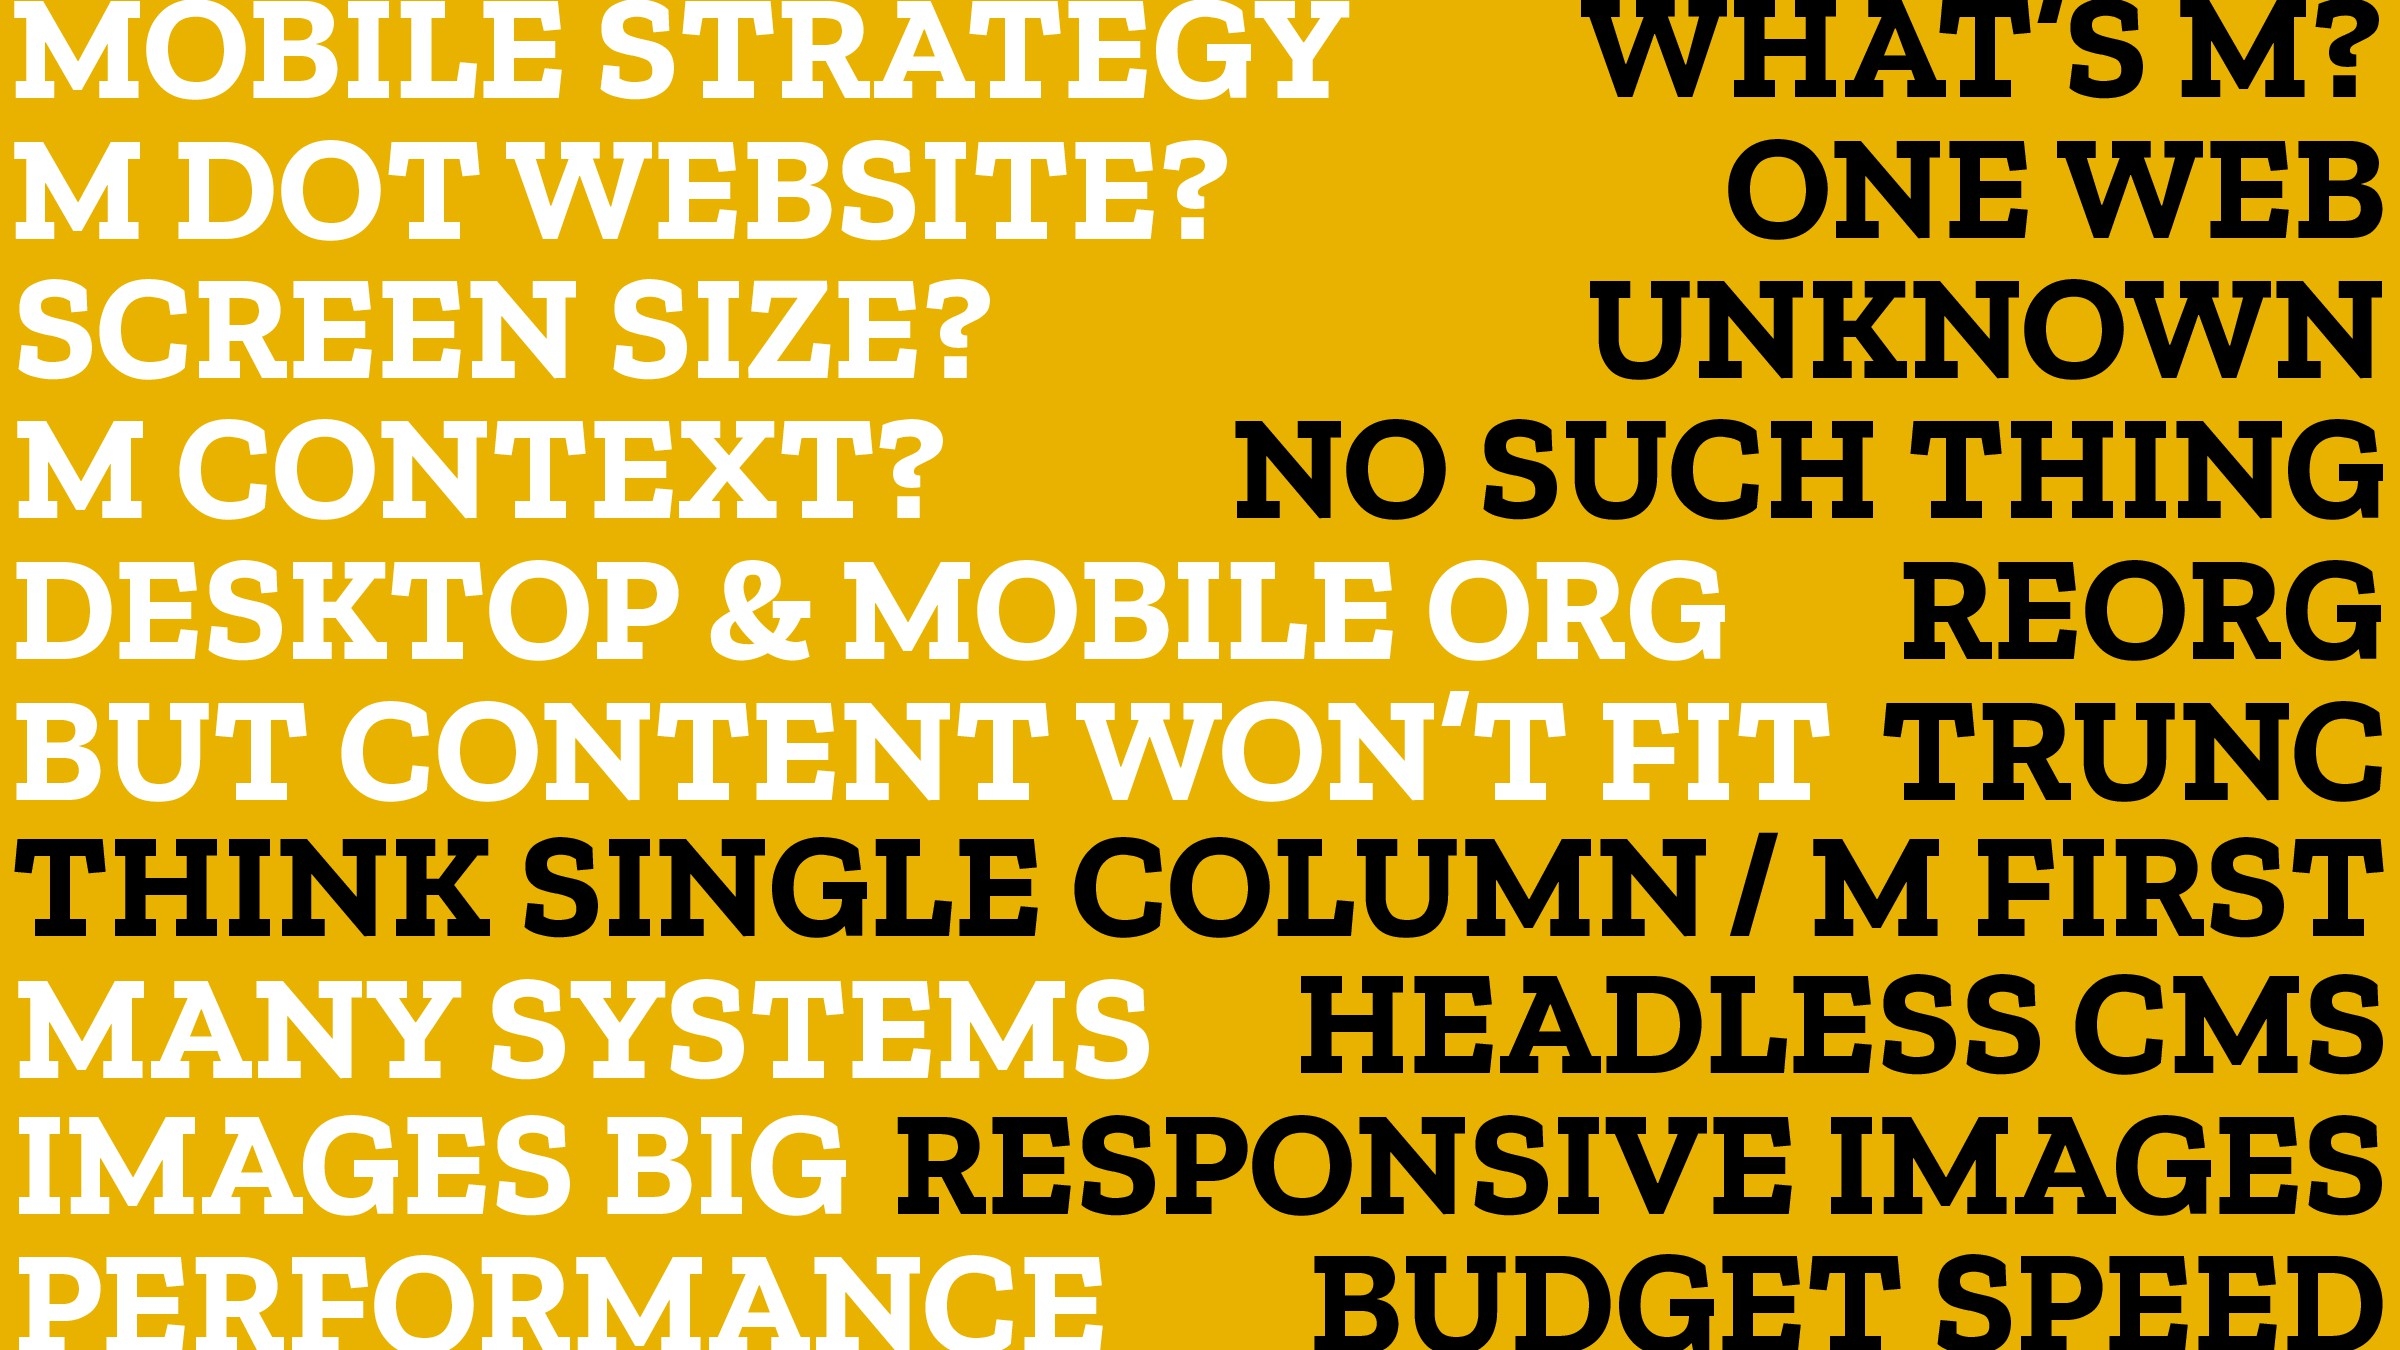 IMAGES BIG MOBILE STRATEGY M DOT WEBSITE? ONE W...